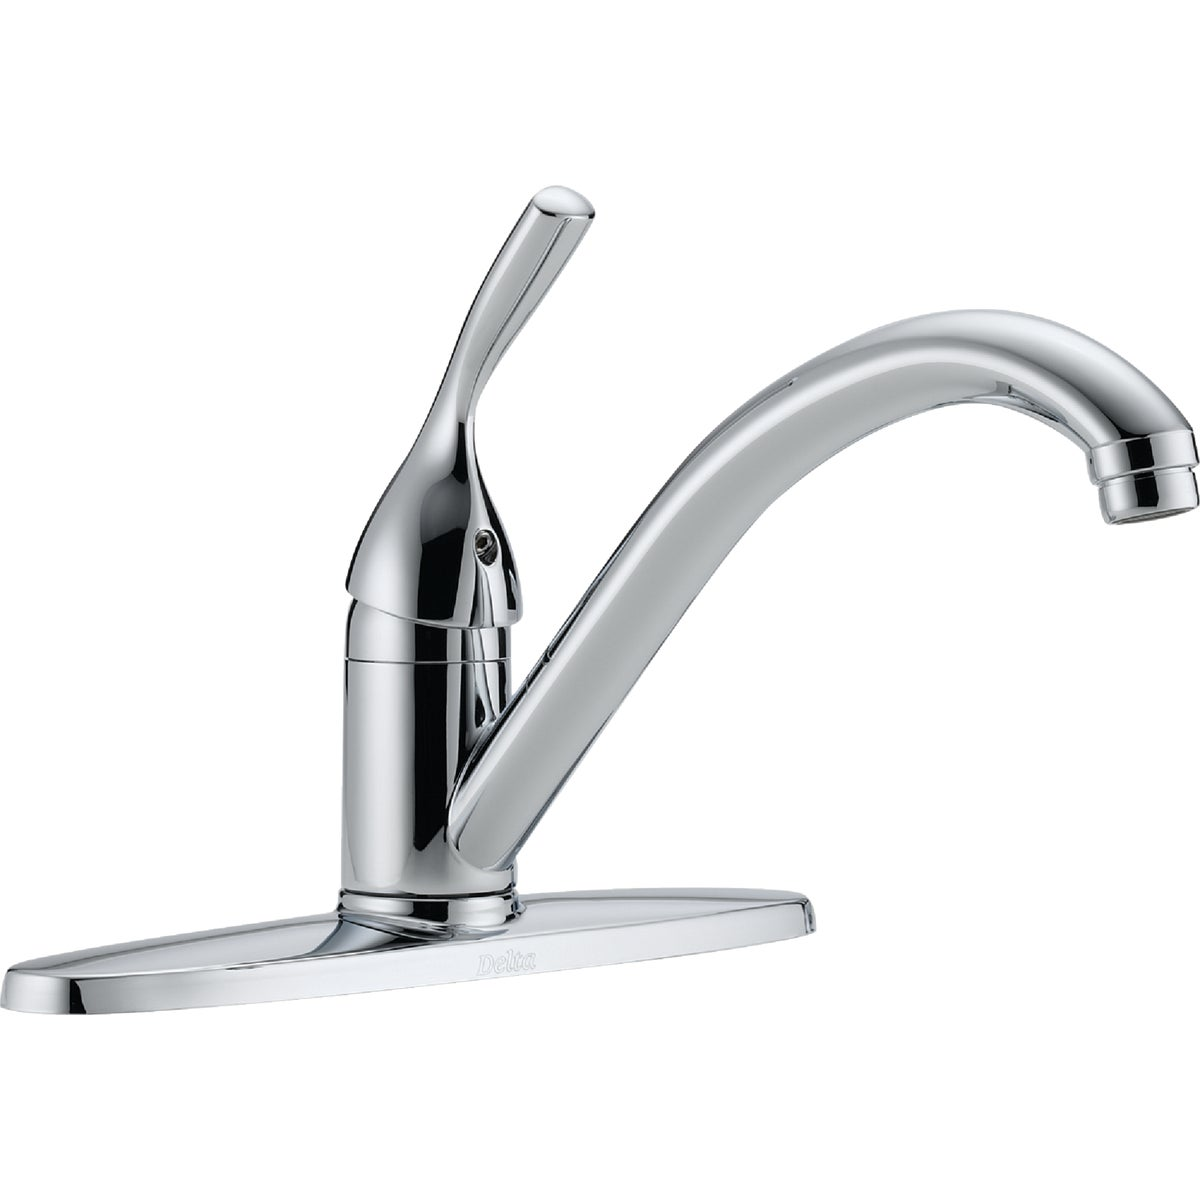 1H CHROME KITCHEN FAUCET